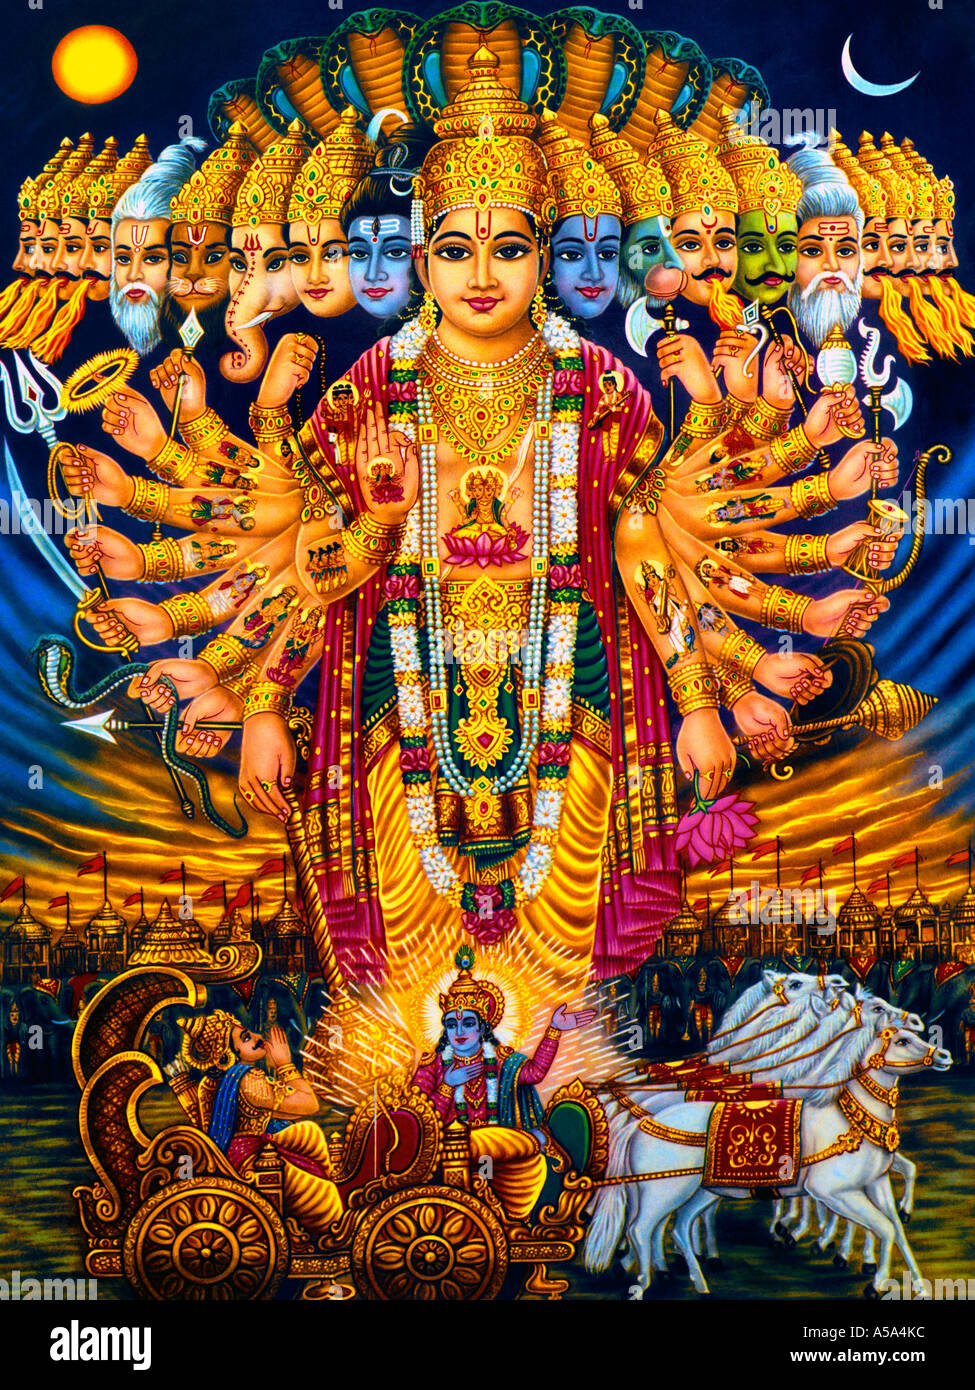 Hindu Gods Krishna Arjuna and Chariot Vishnu and Other Indian Gods Vishvarupa - Stock Image